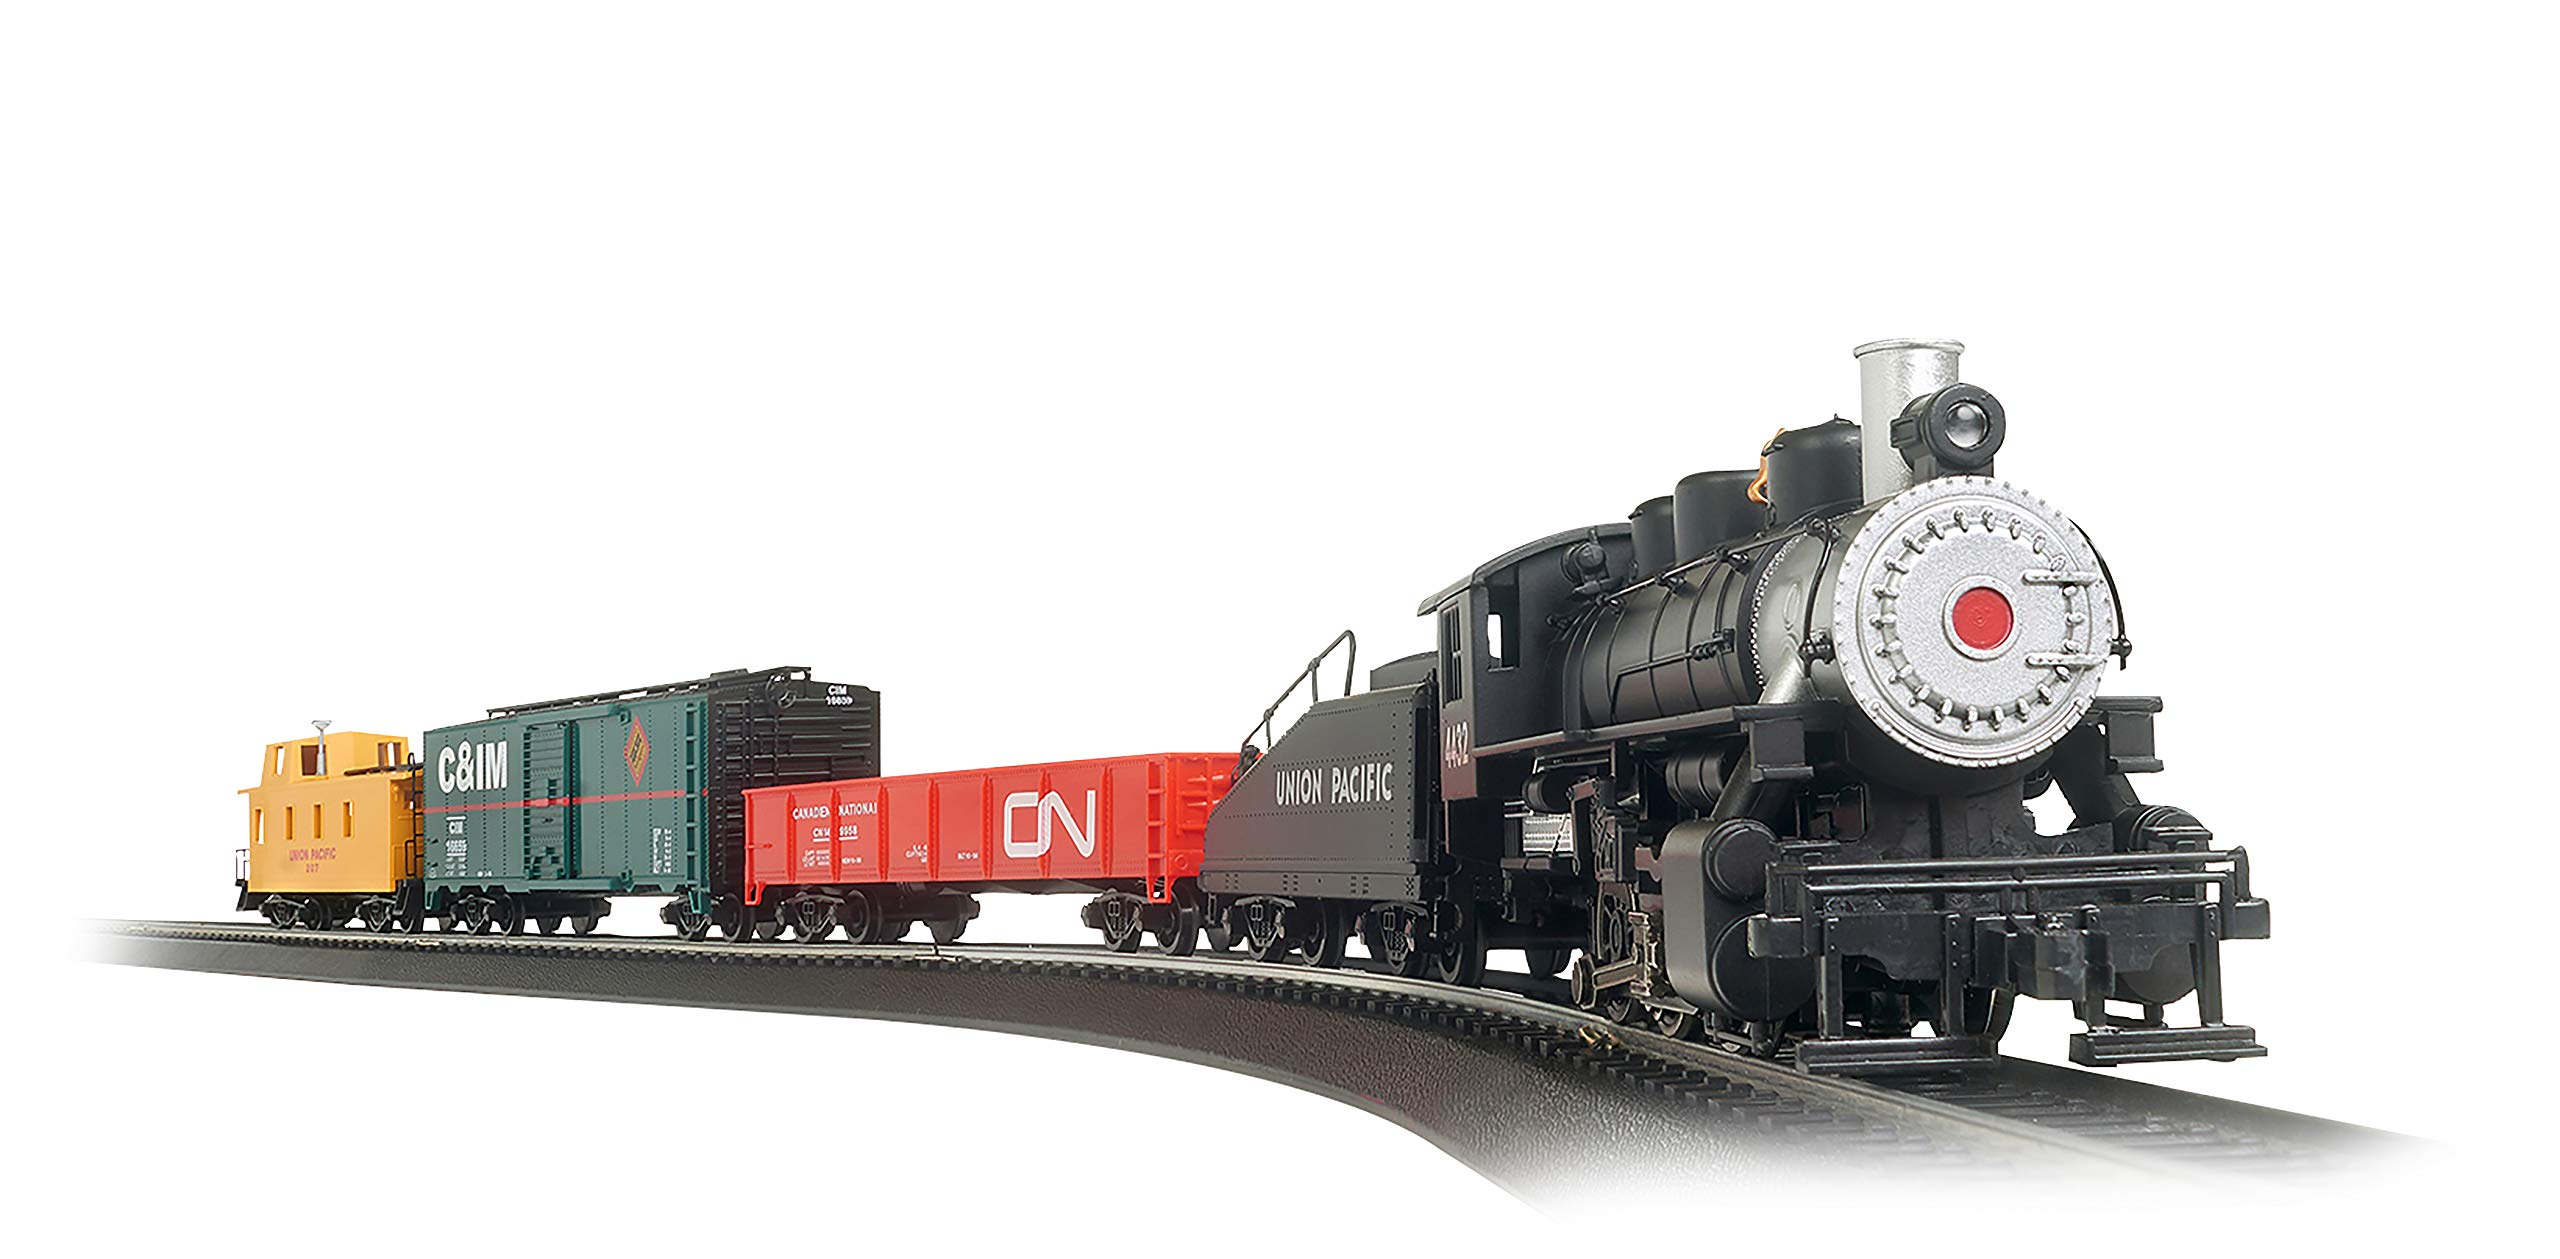 Bachmann Trains - Pacific Flyer Ready To Run Electric Train Set - HO Scale by Bachmann Trains